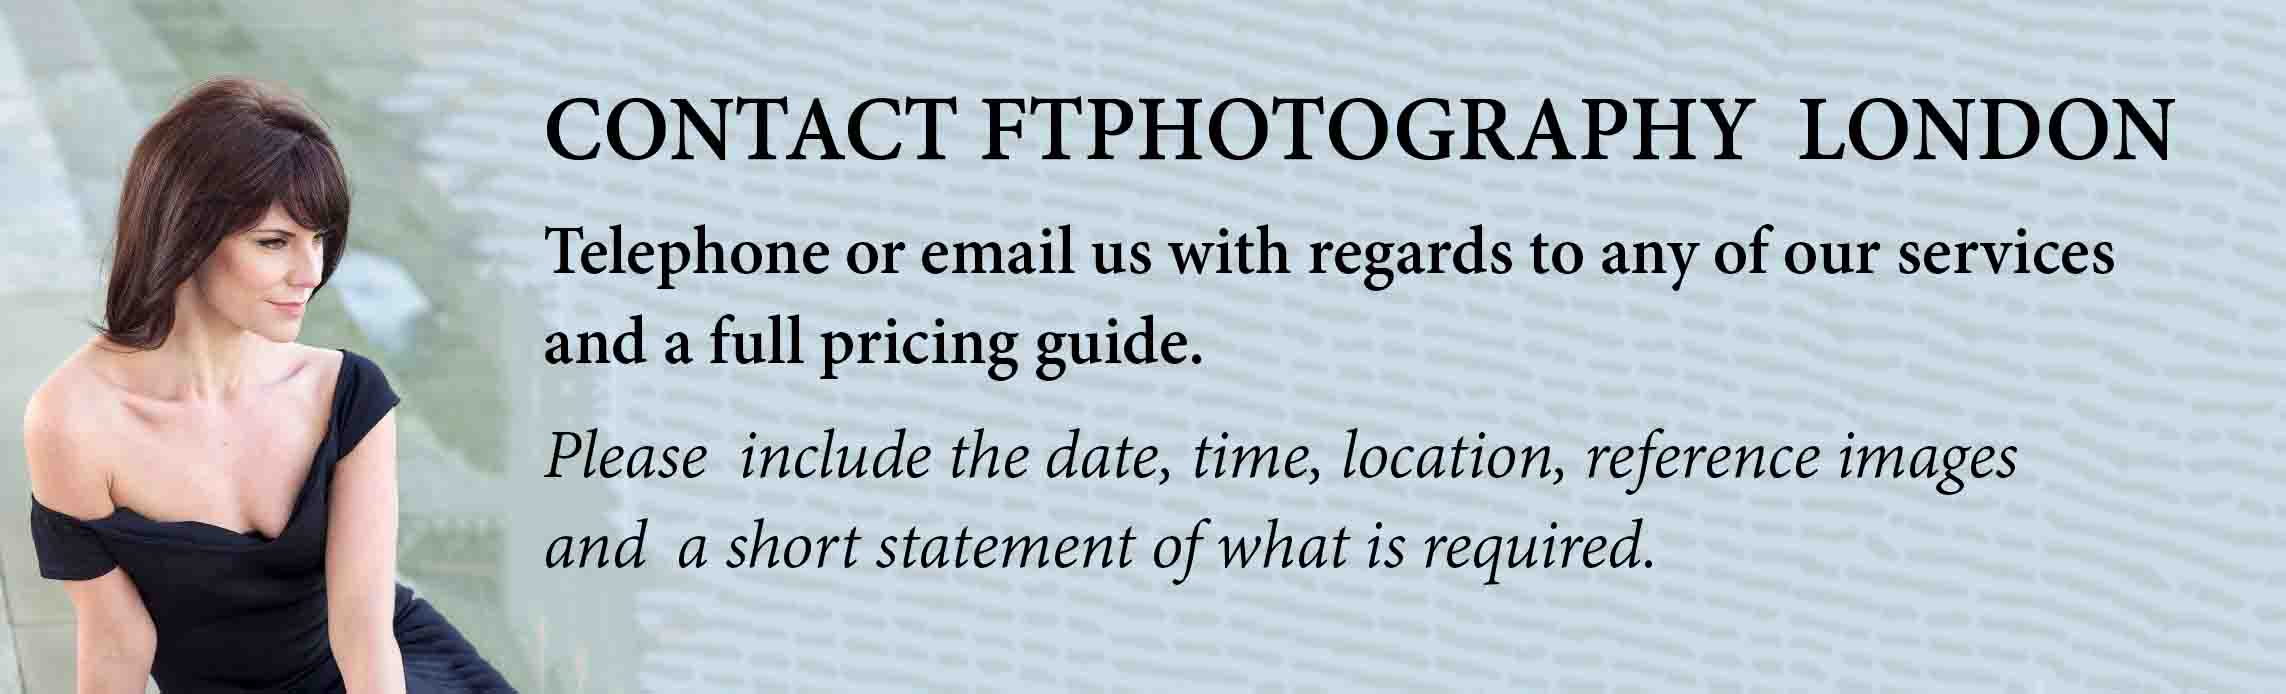 CONTACT US FTPhotography